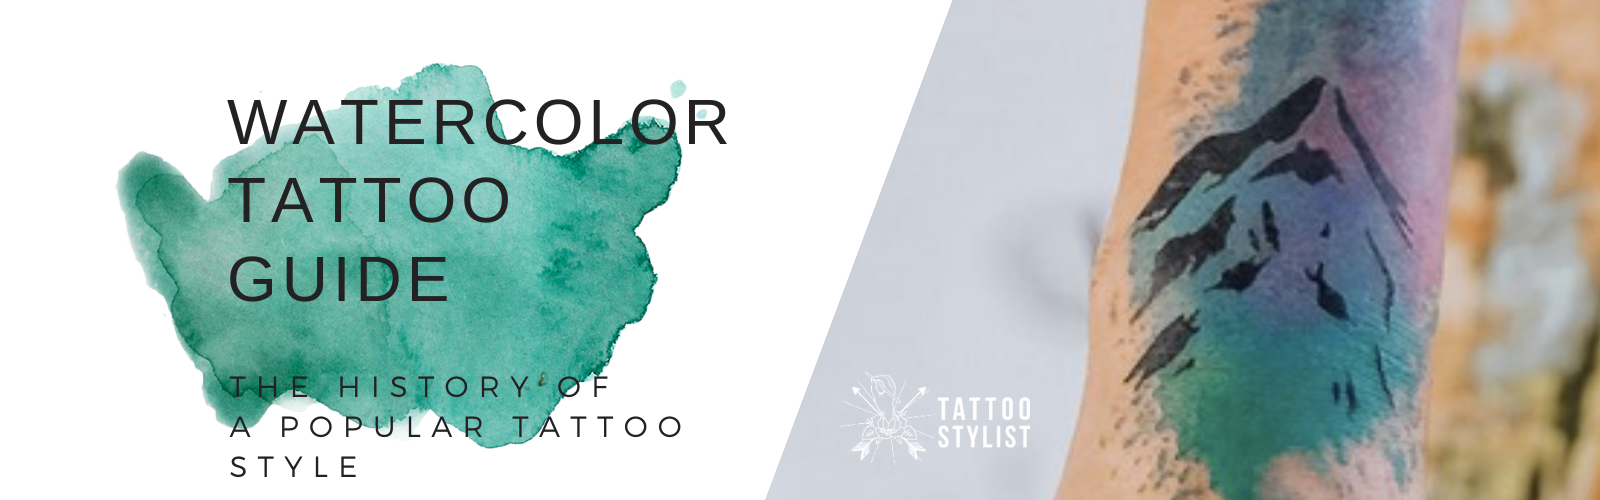 watercolor tattoo featured image